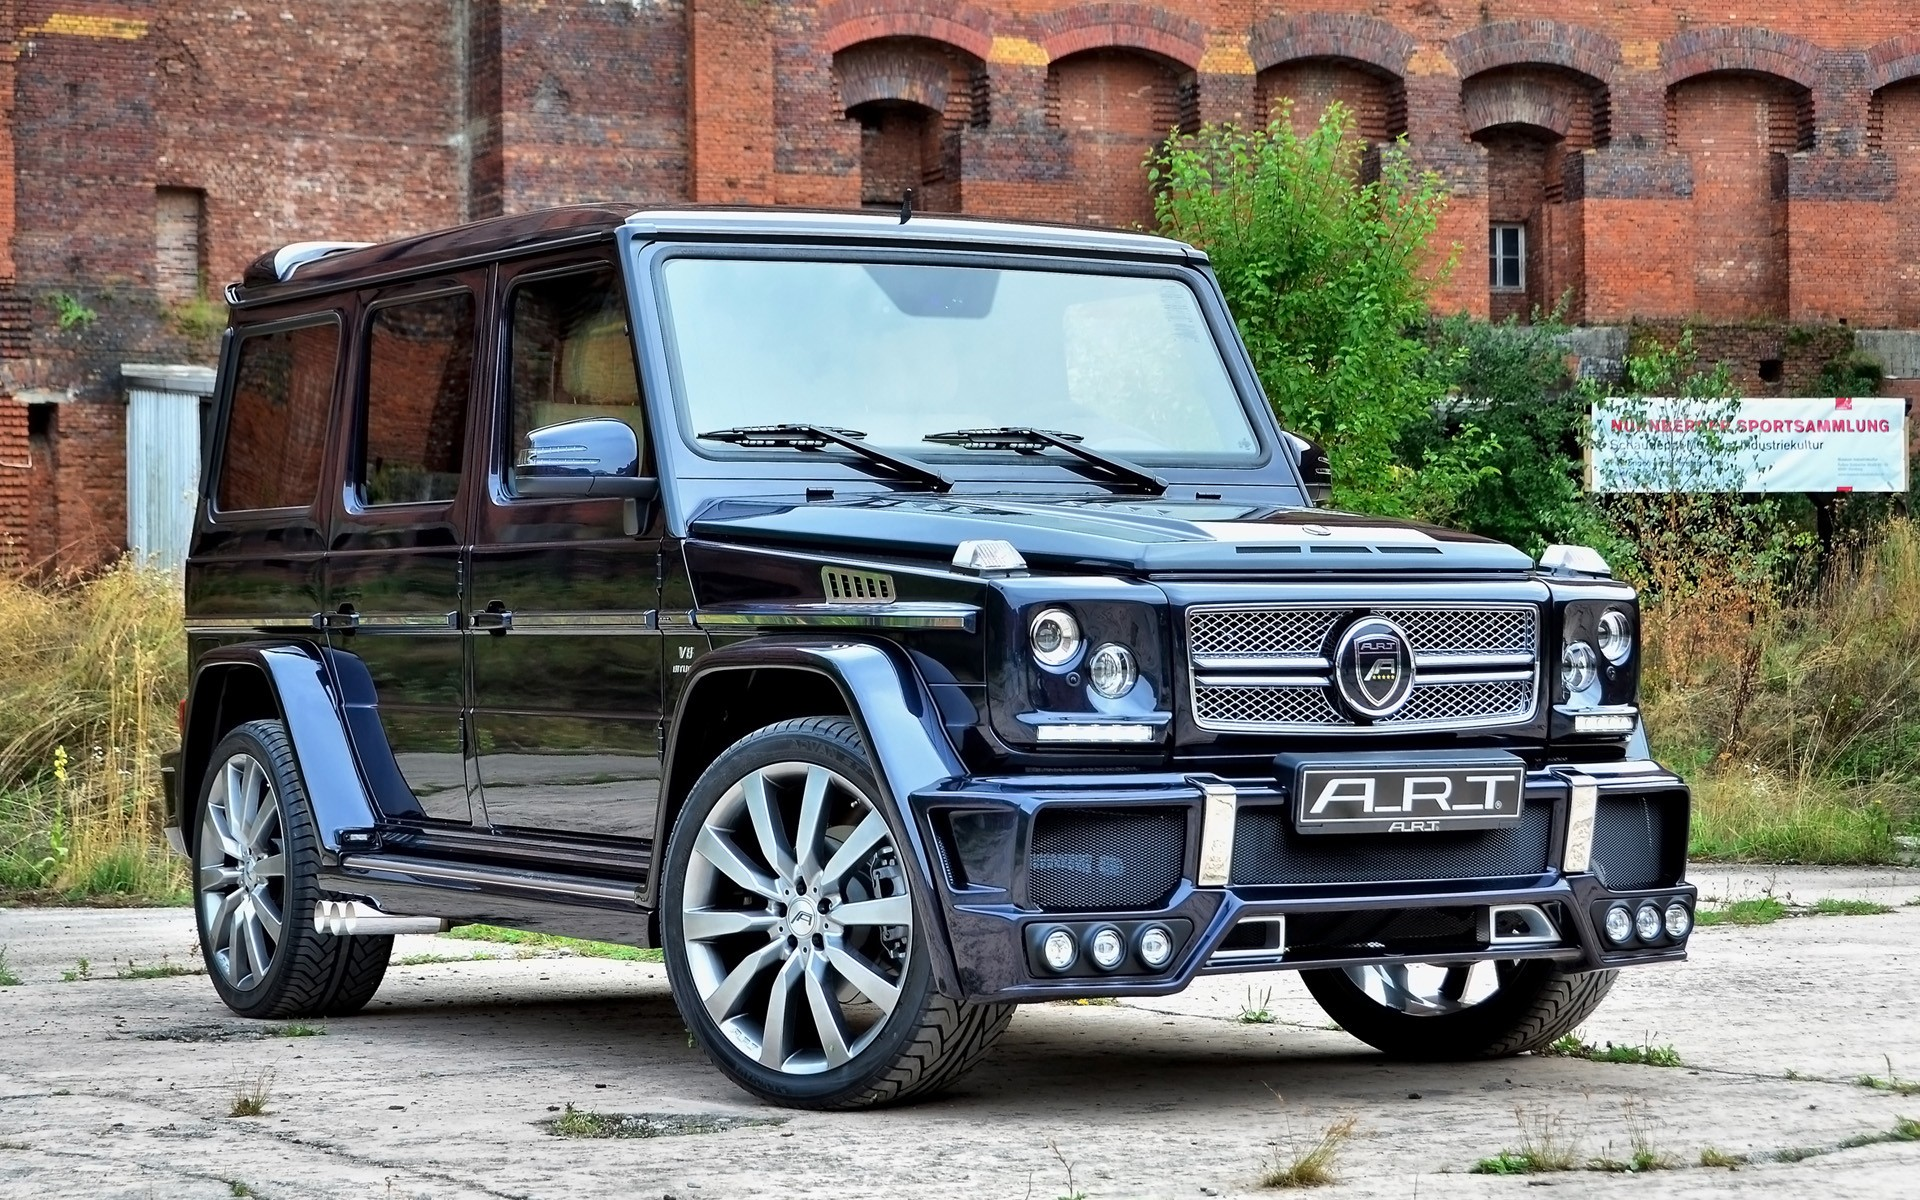 2014 art mercedes benz g55 amg streetline 65 wallpaper for Mercedes benz range rover price